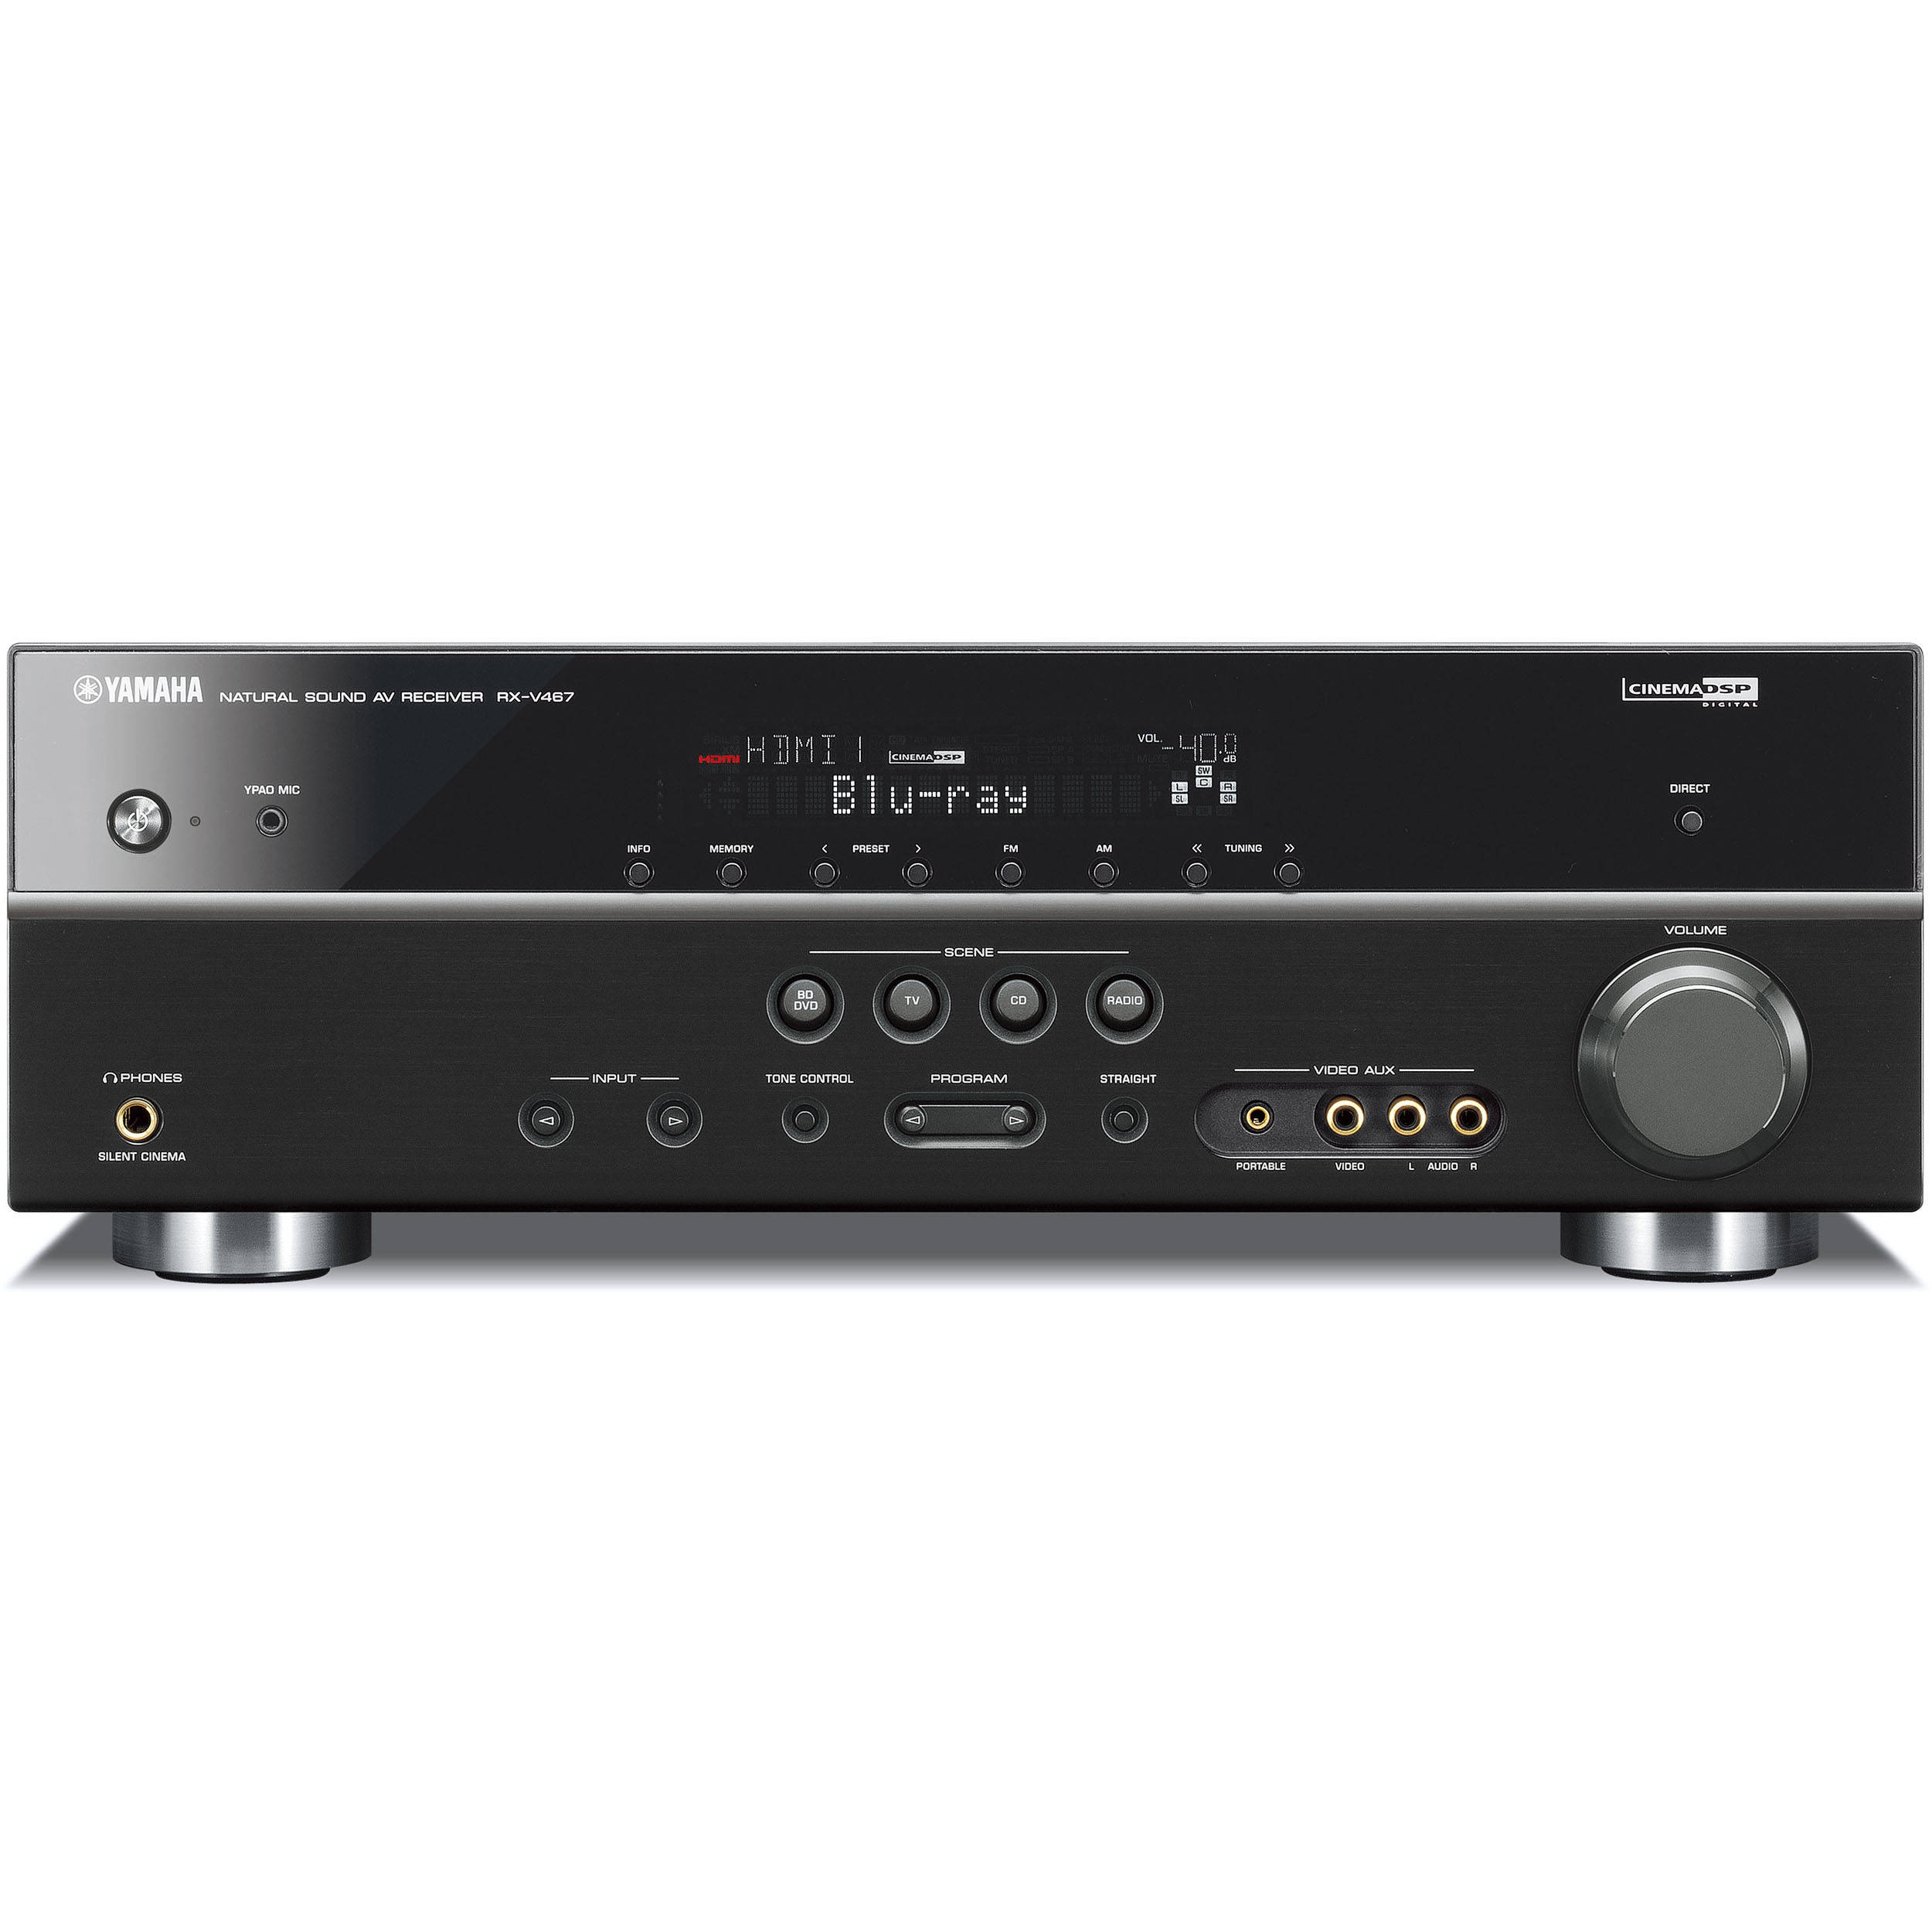 yamaha rx-v467 5.1 channel home theater receiver rx-v467bl b&h